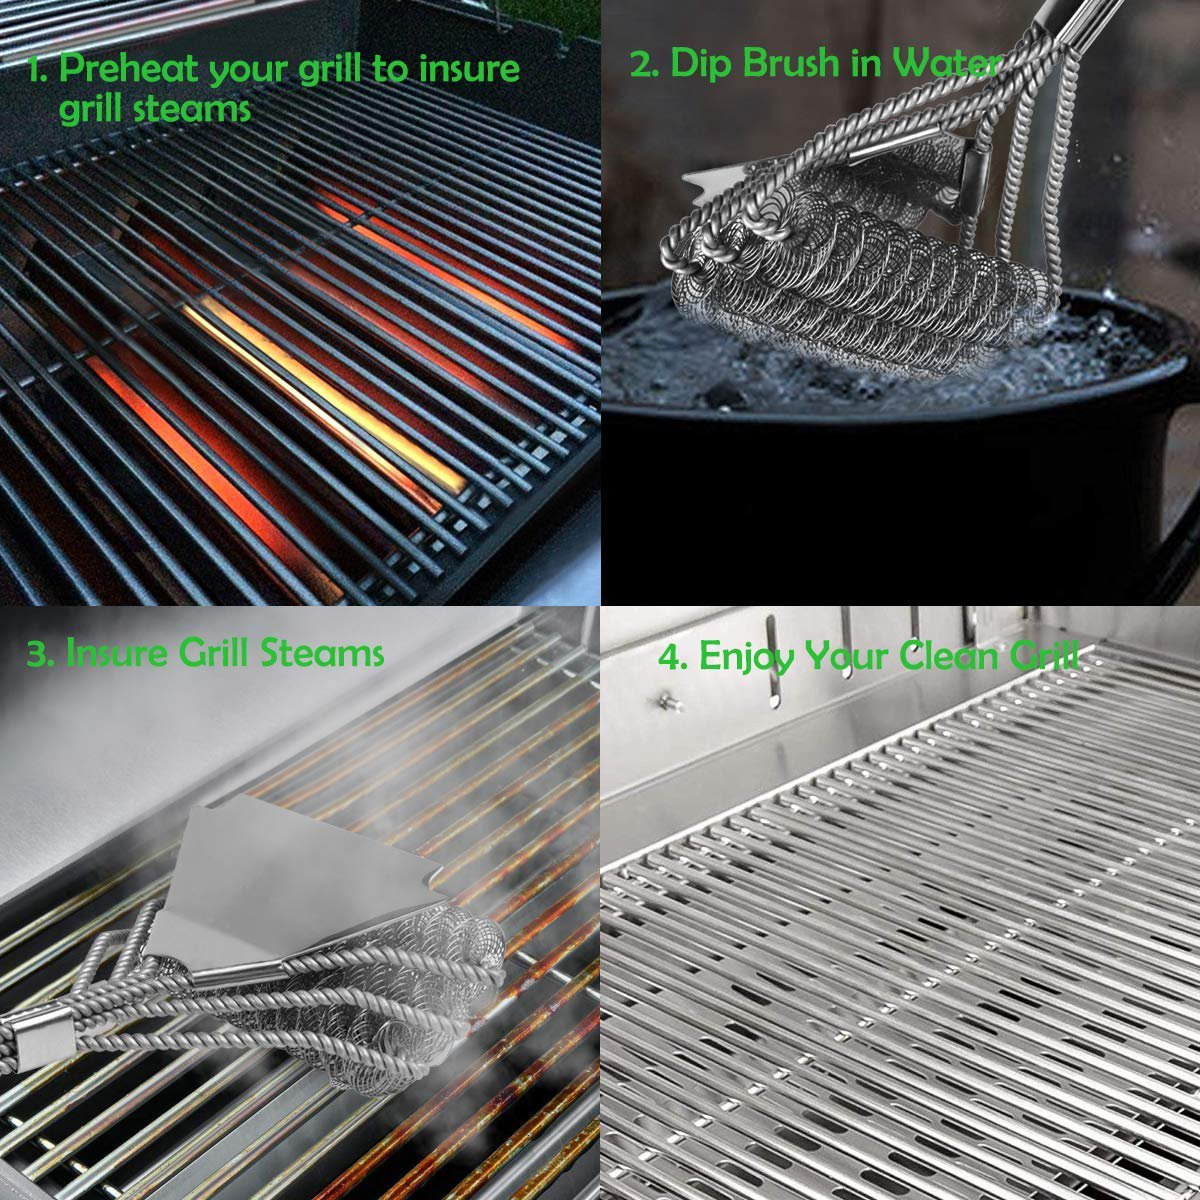 2019 Upgraded 3 in 1 Bristle Free BBQ Cleaning Brush, Stainless Safe Barbecue Cleaner Accessories Suitable for Porcelain, Ceramic, Steel, Iron All Grills